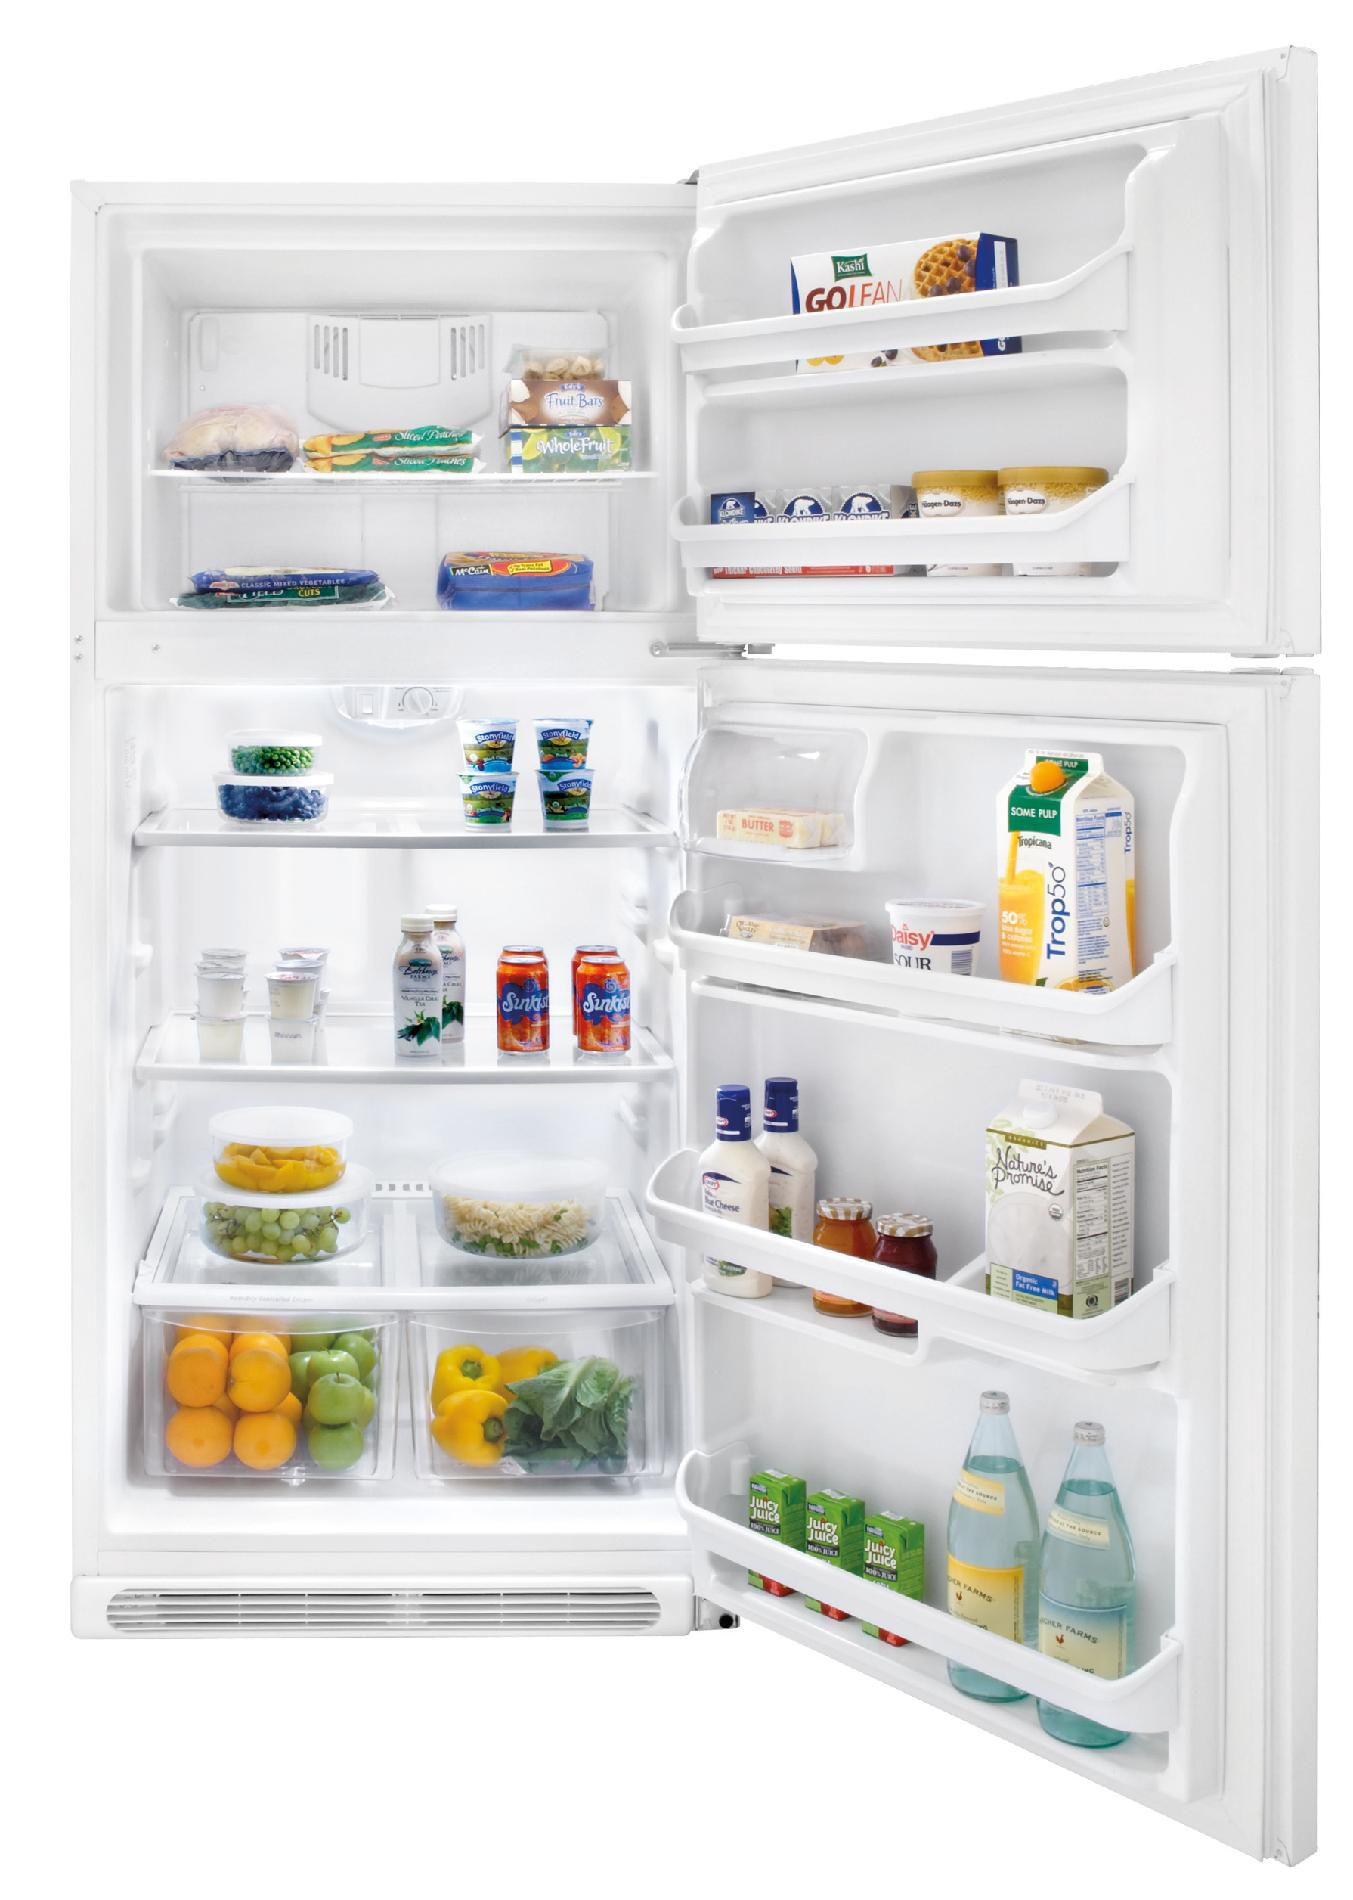 FRIGIDAIRE  20.6 cu. ft Top-Freezer Refrigerator - White